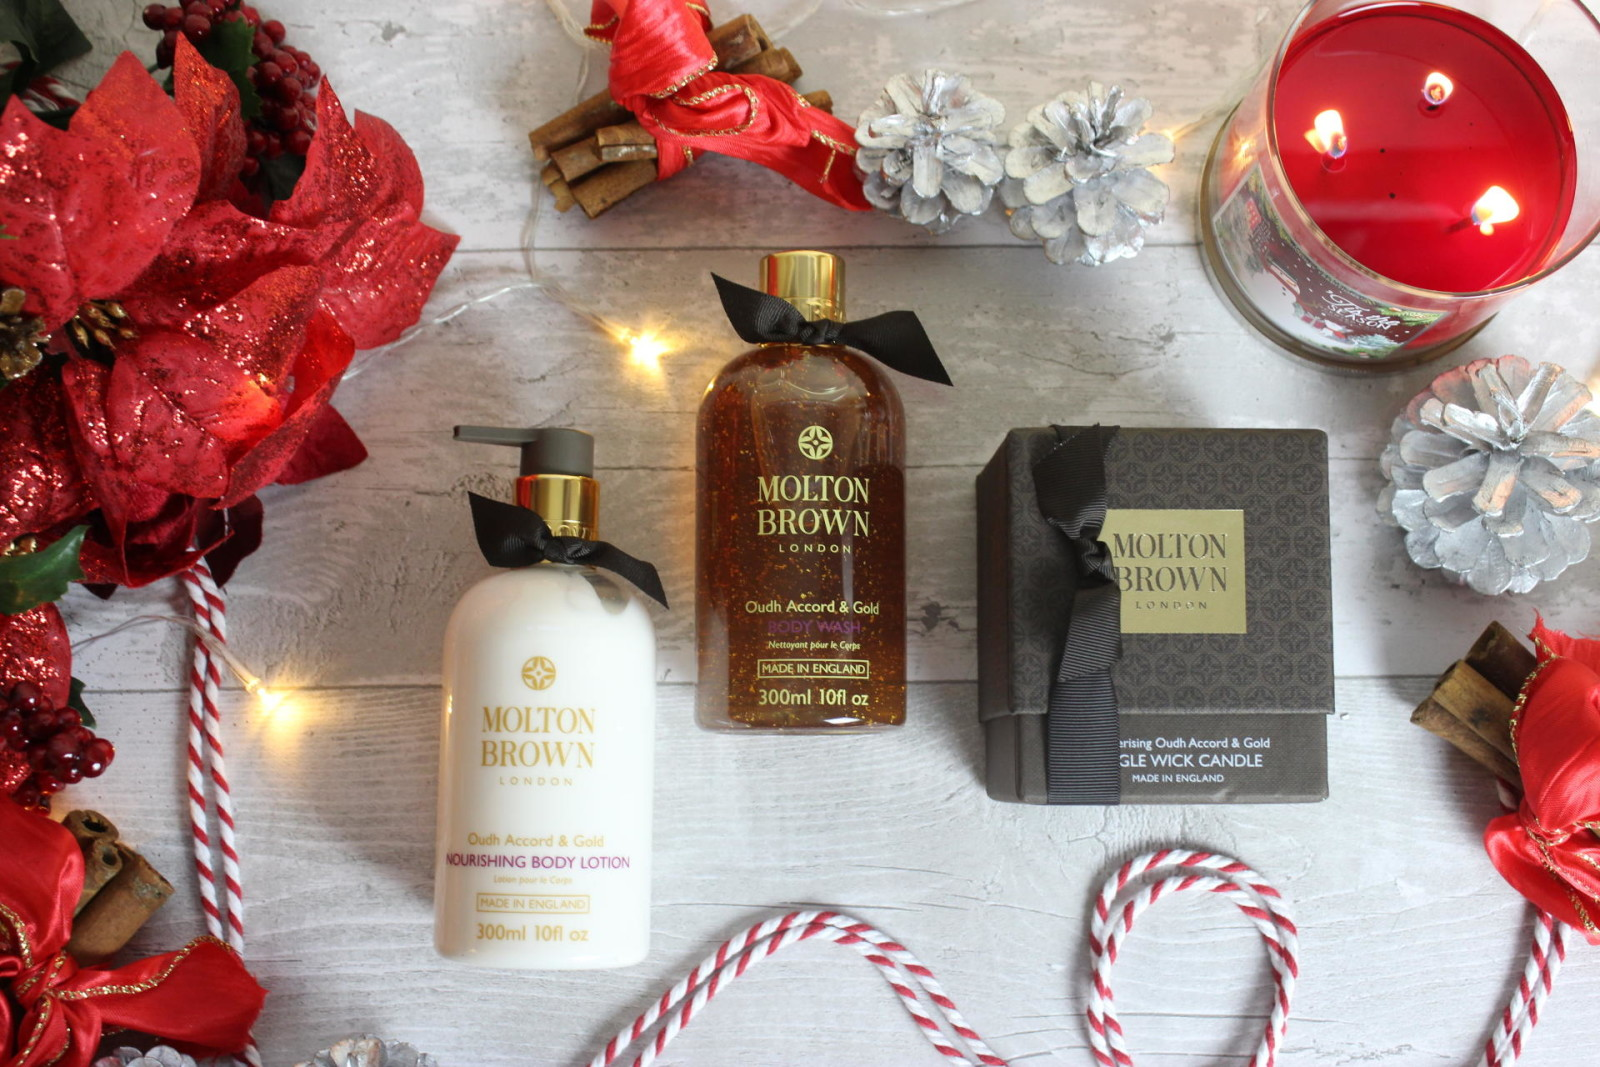 Molton Brown Oudh Accord and Gold